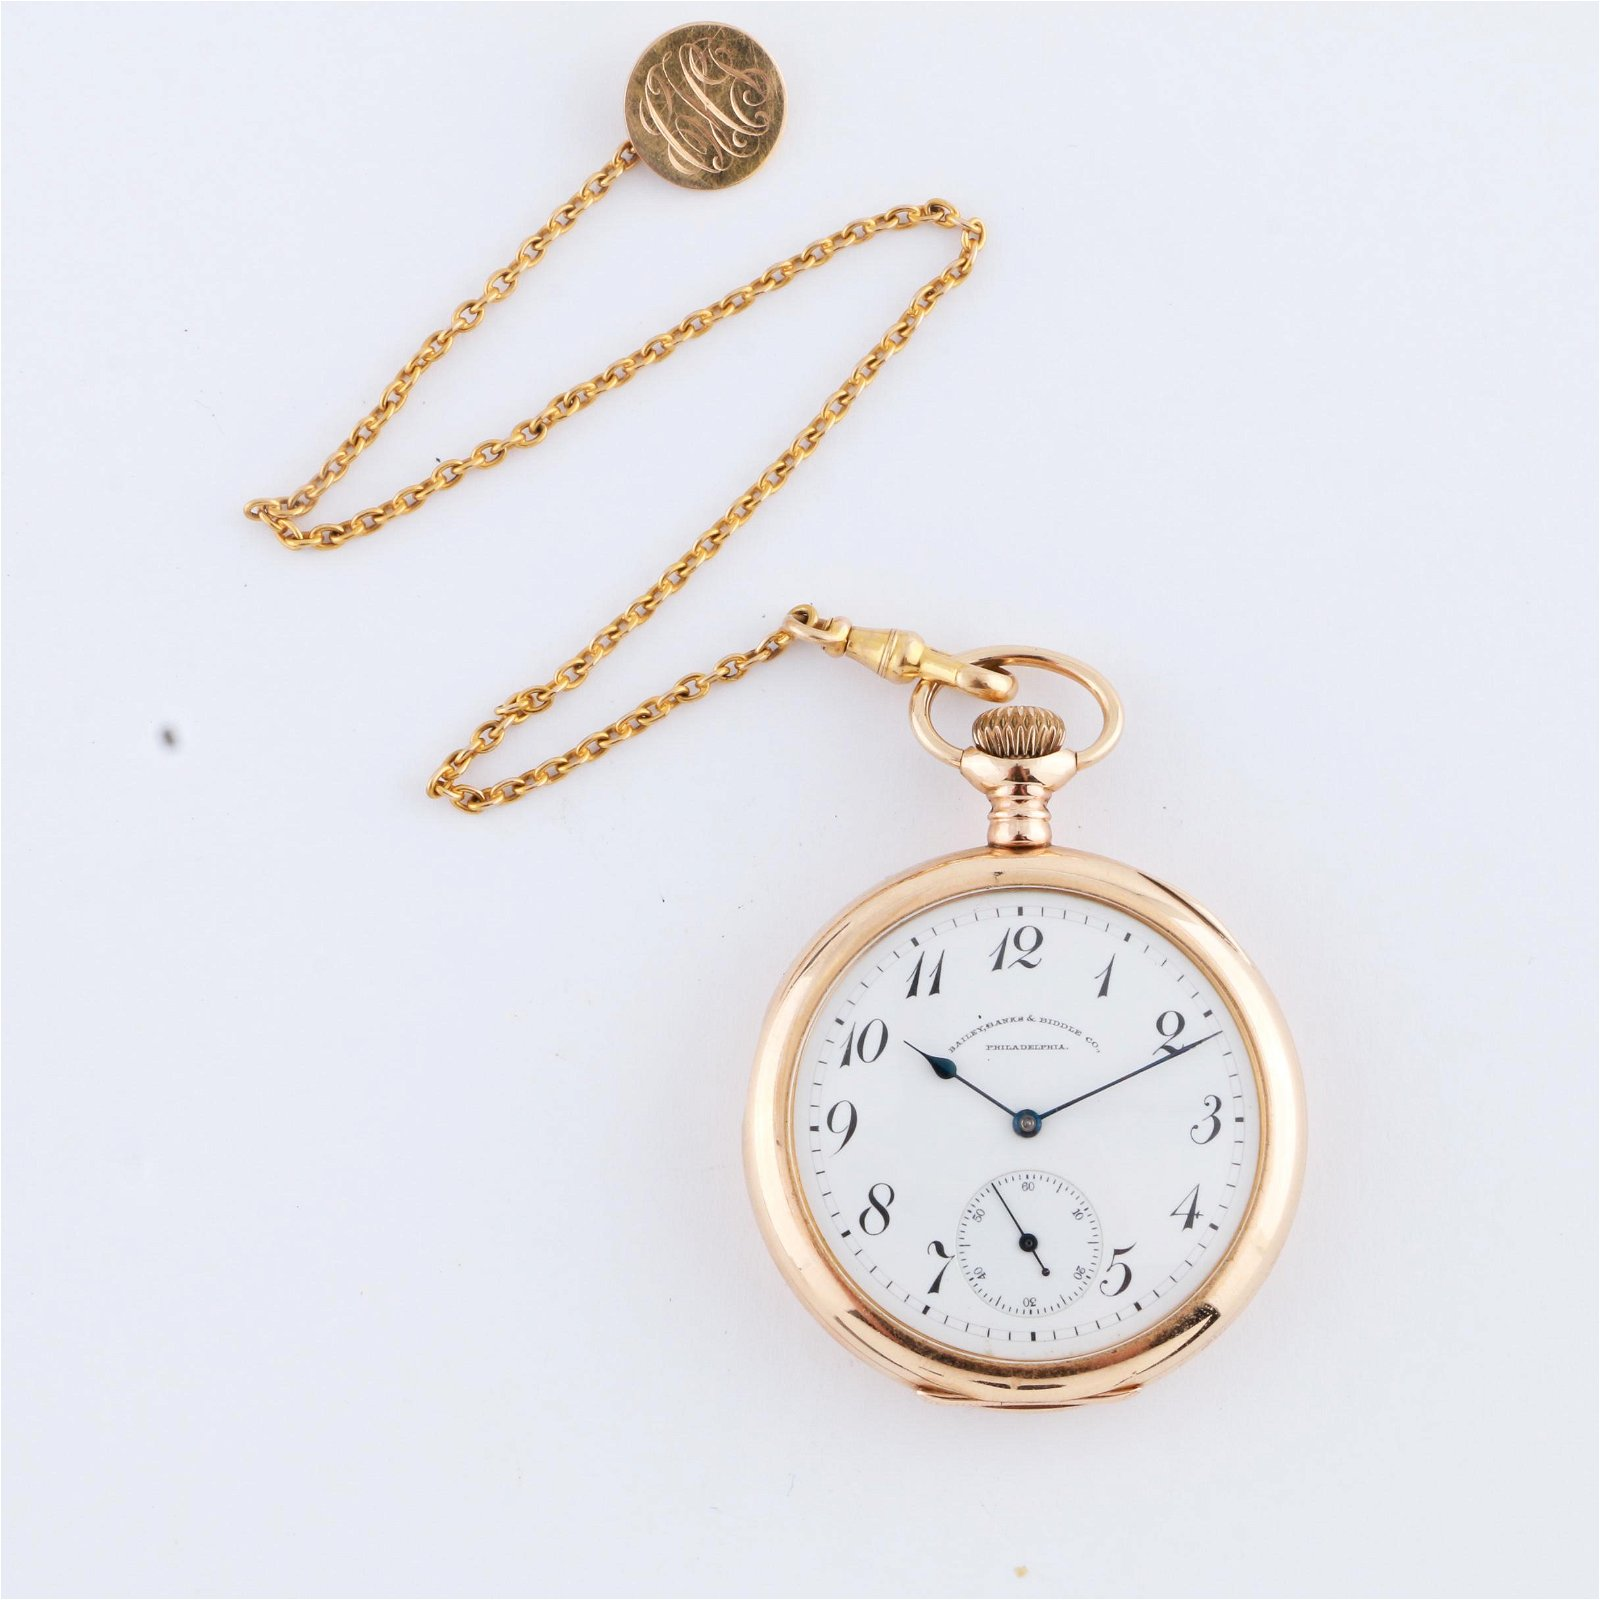 A.W.W.C. Co. 14K Yellow Gold Pocket Watch with Chain